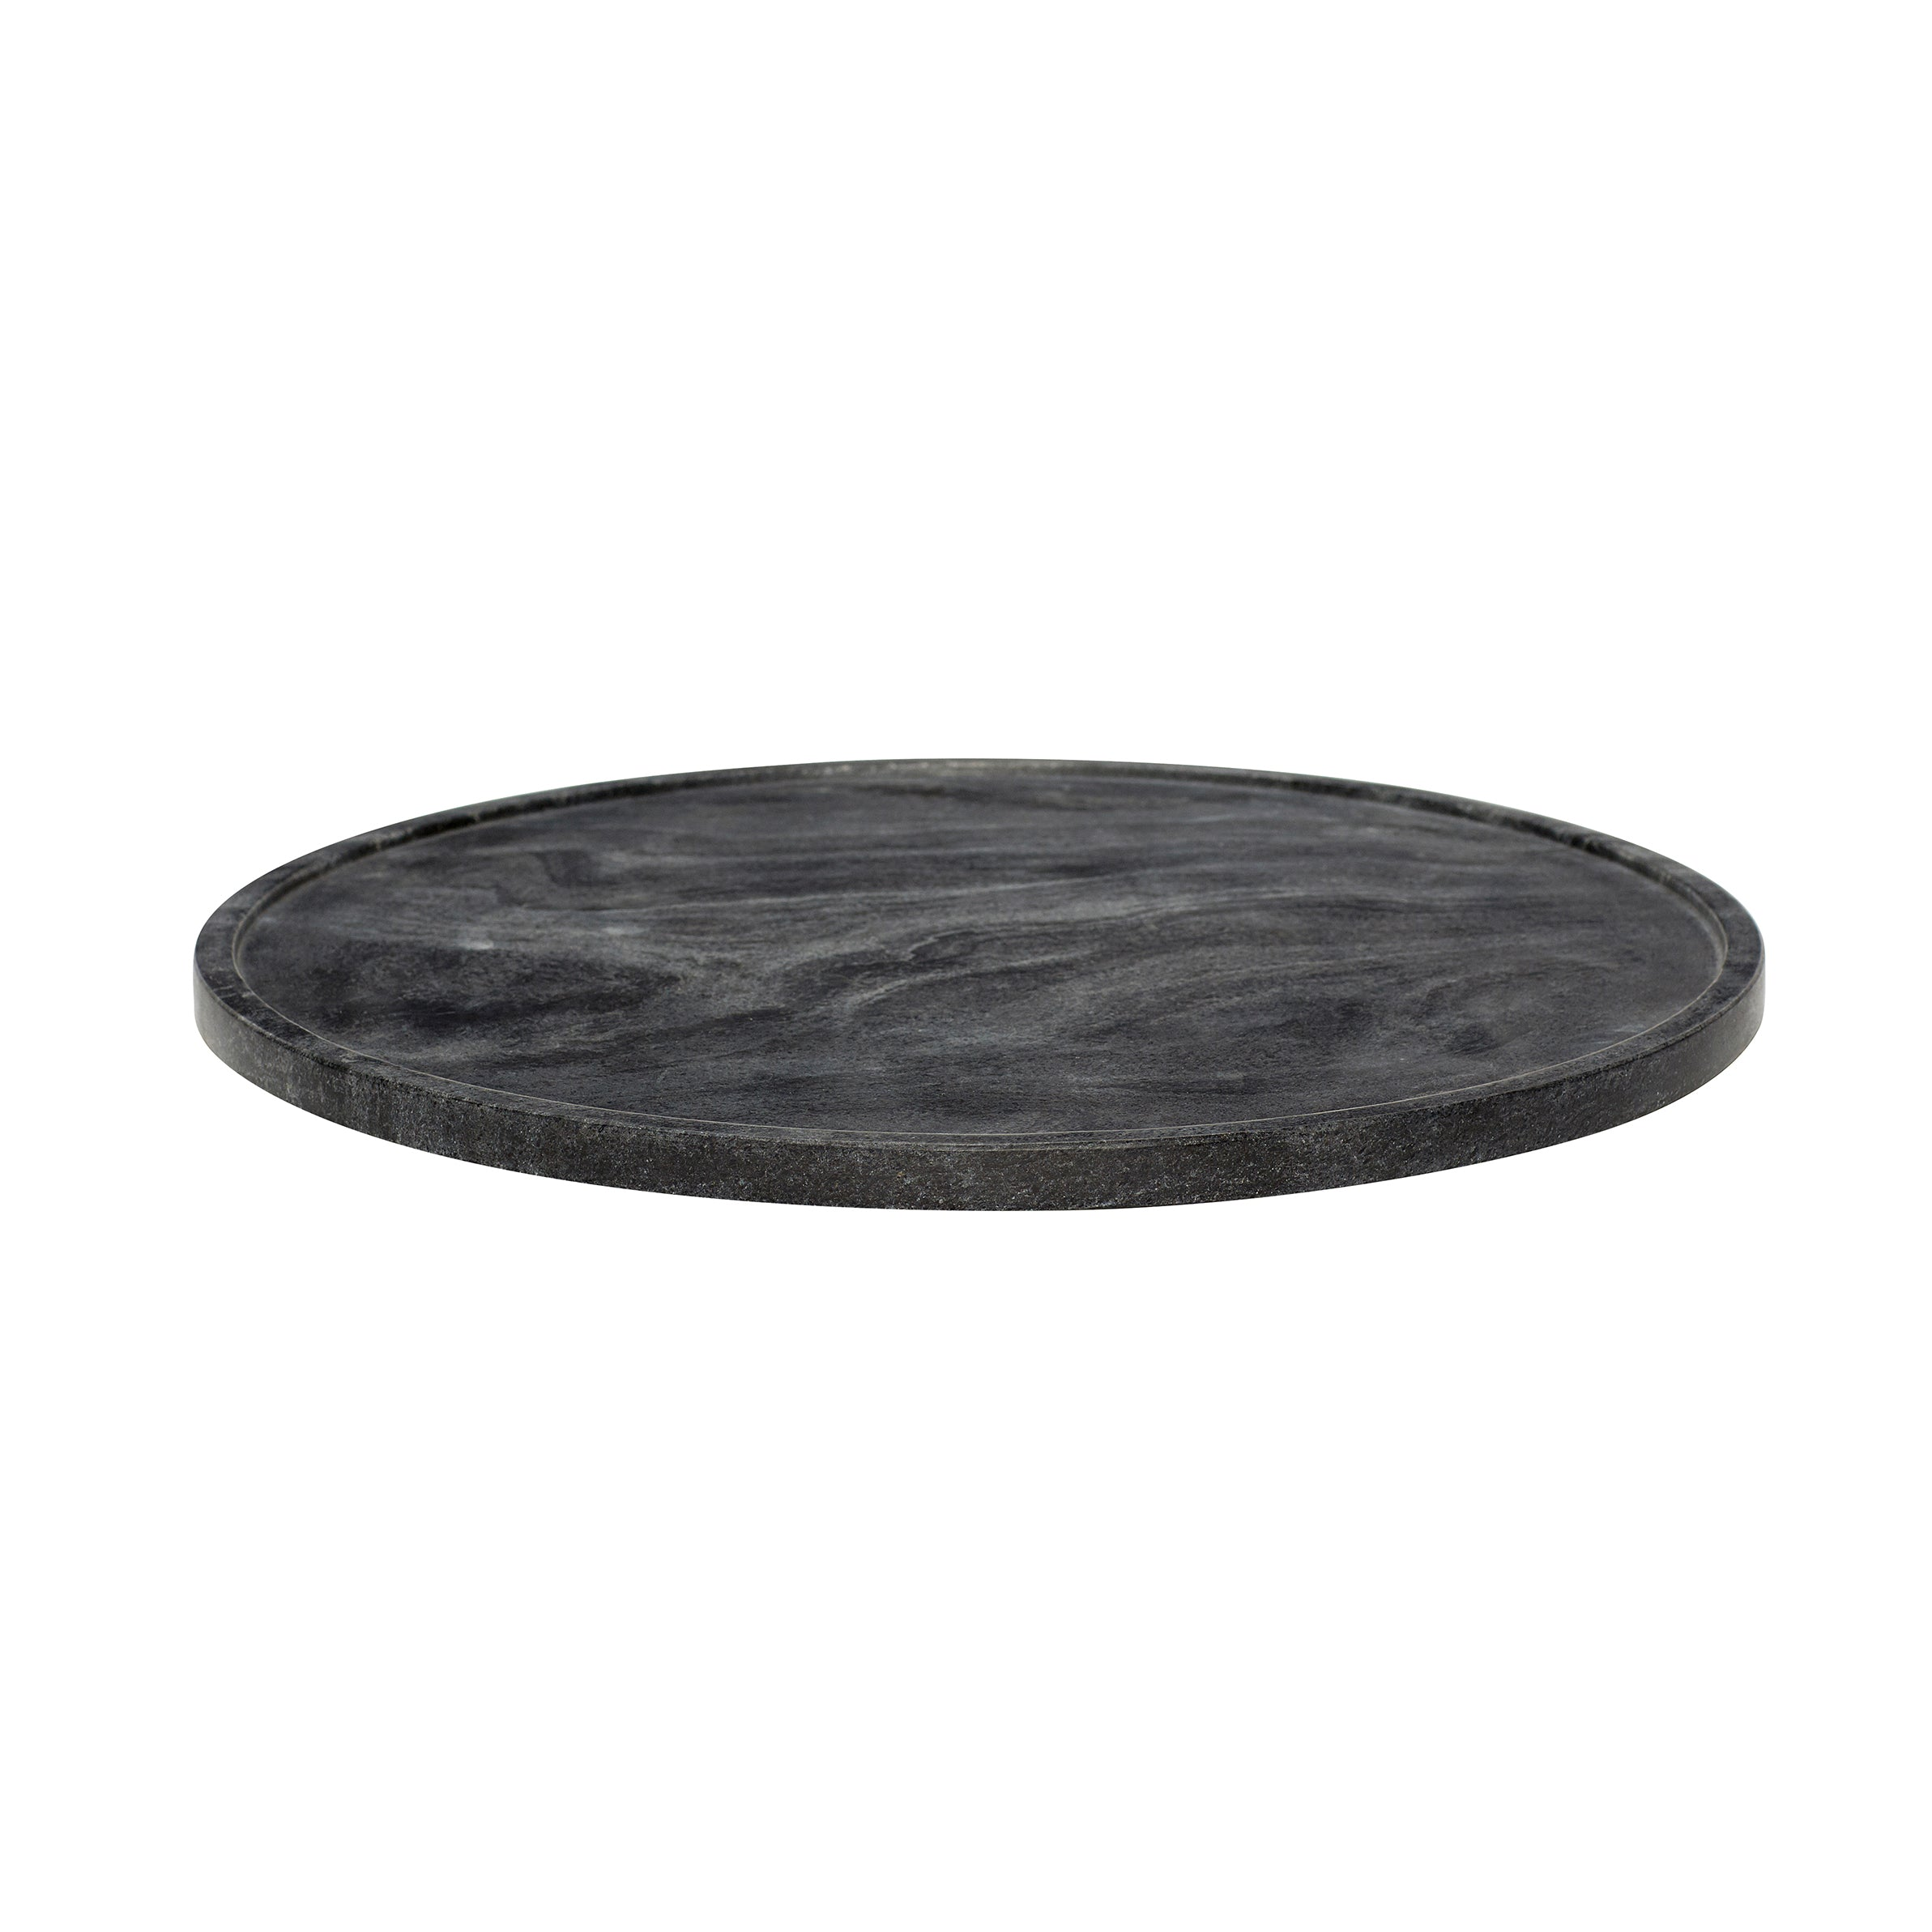 Black Round Marble Platter in Large Size